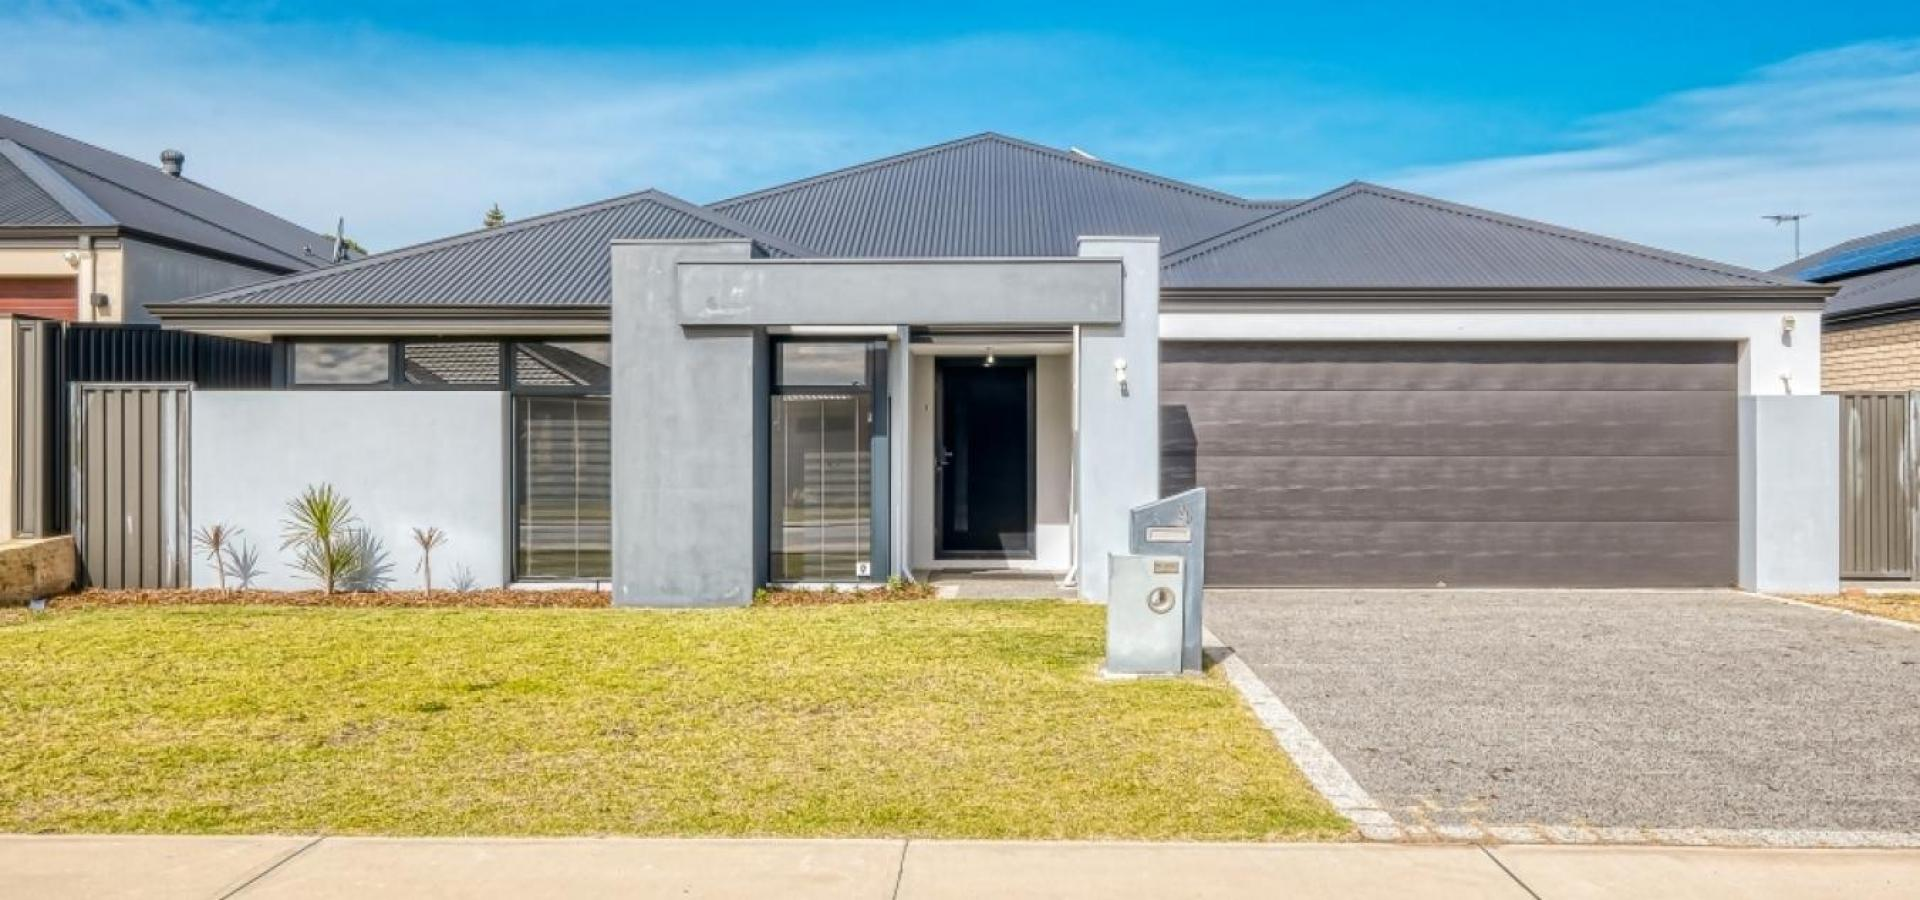 LARGE FAMILY HOME CLOSE TO COOGEE BEACH!